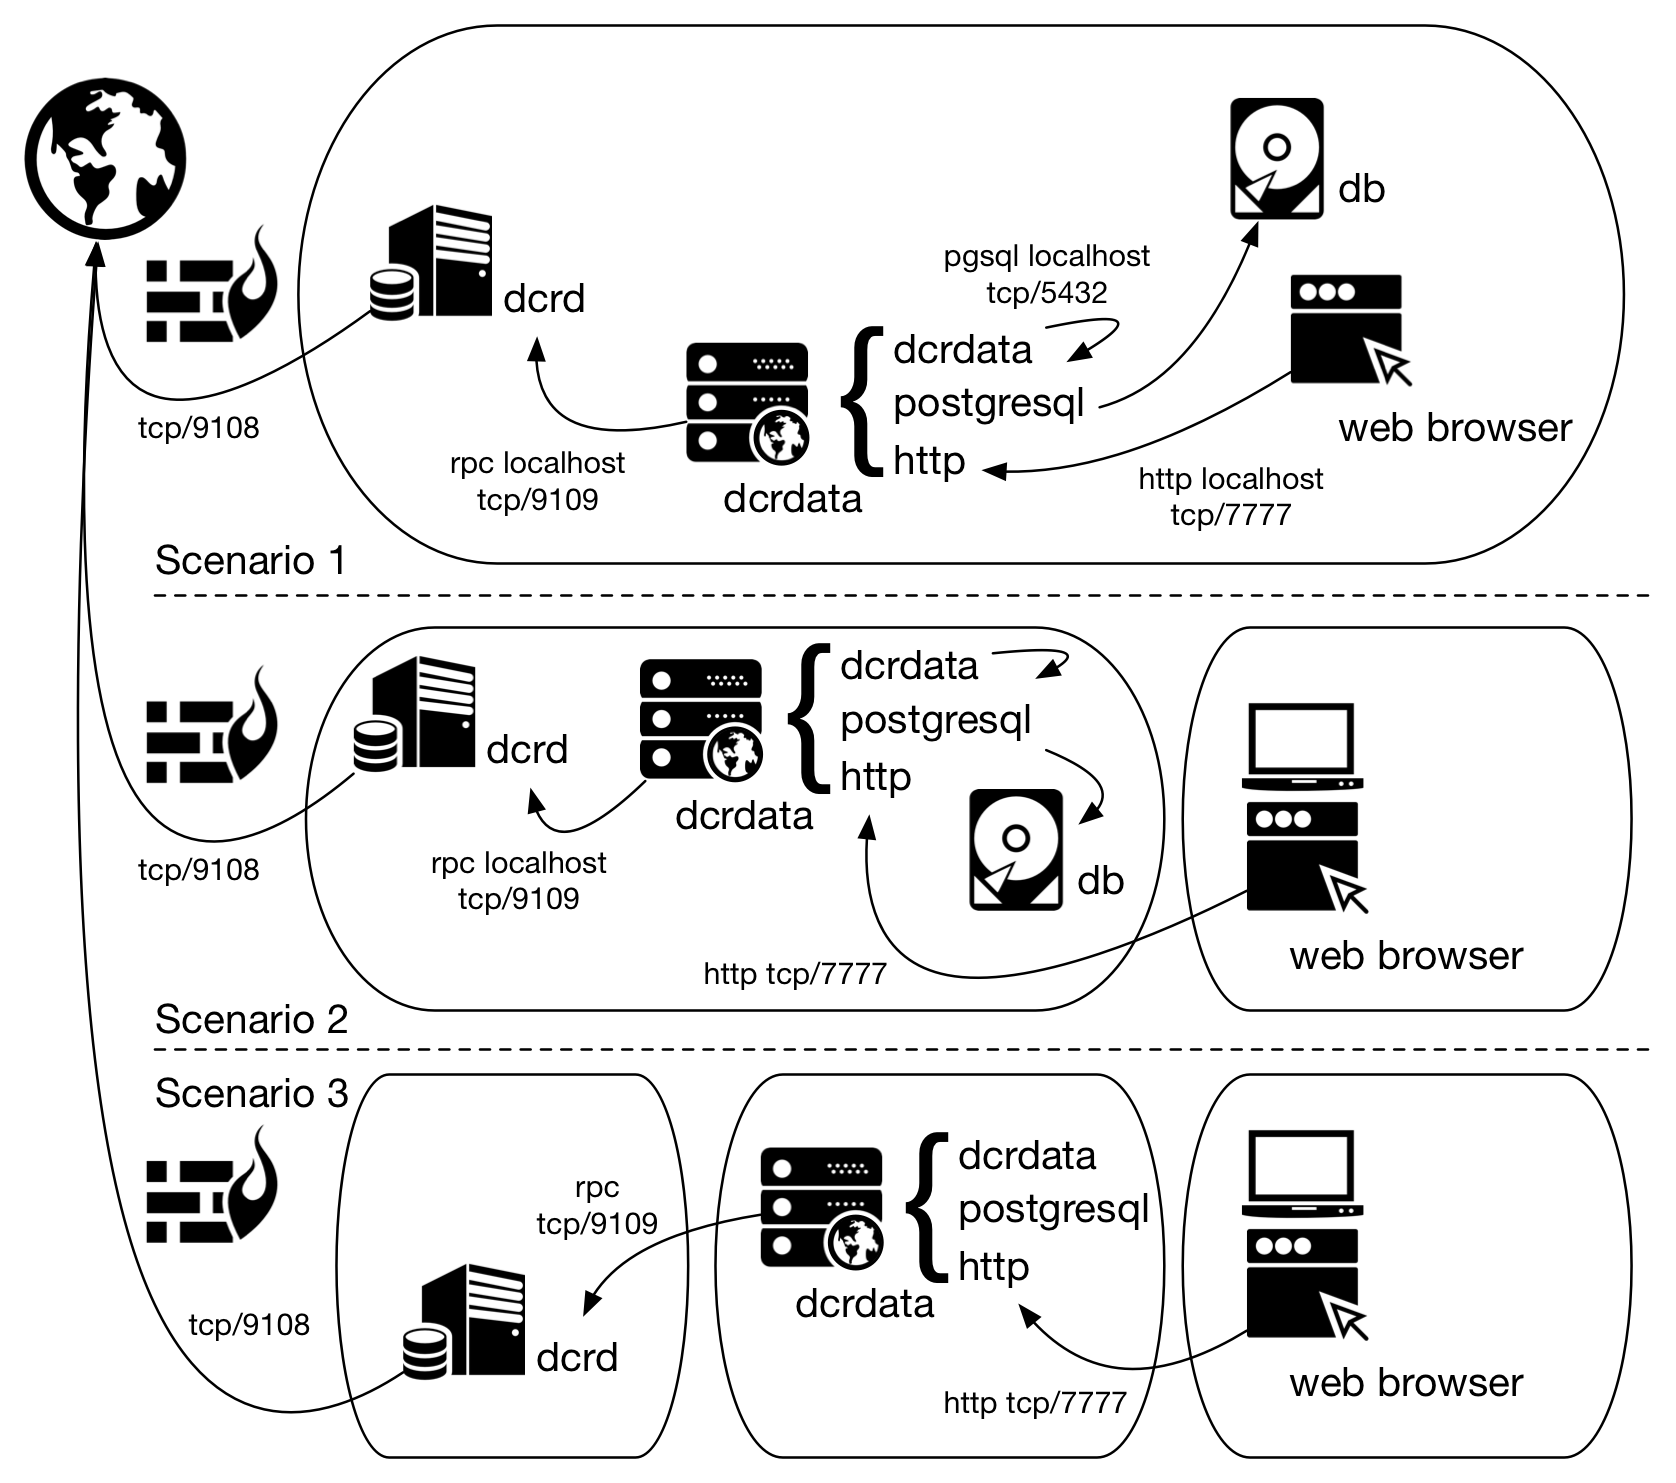 Figure 1 - Possible scenarios for dcrdata installation